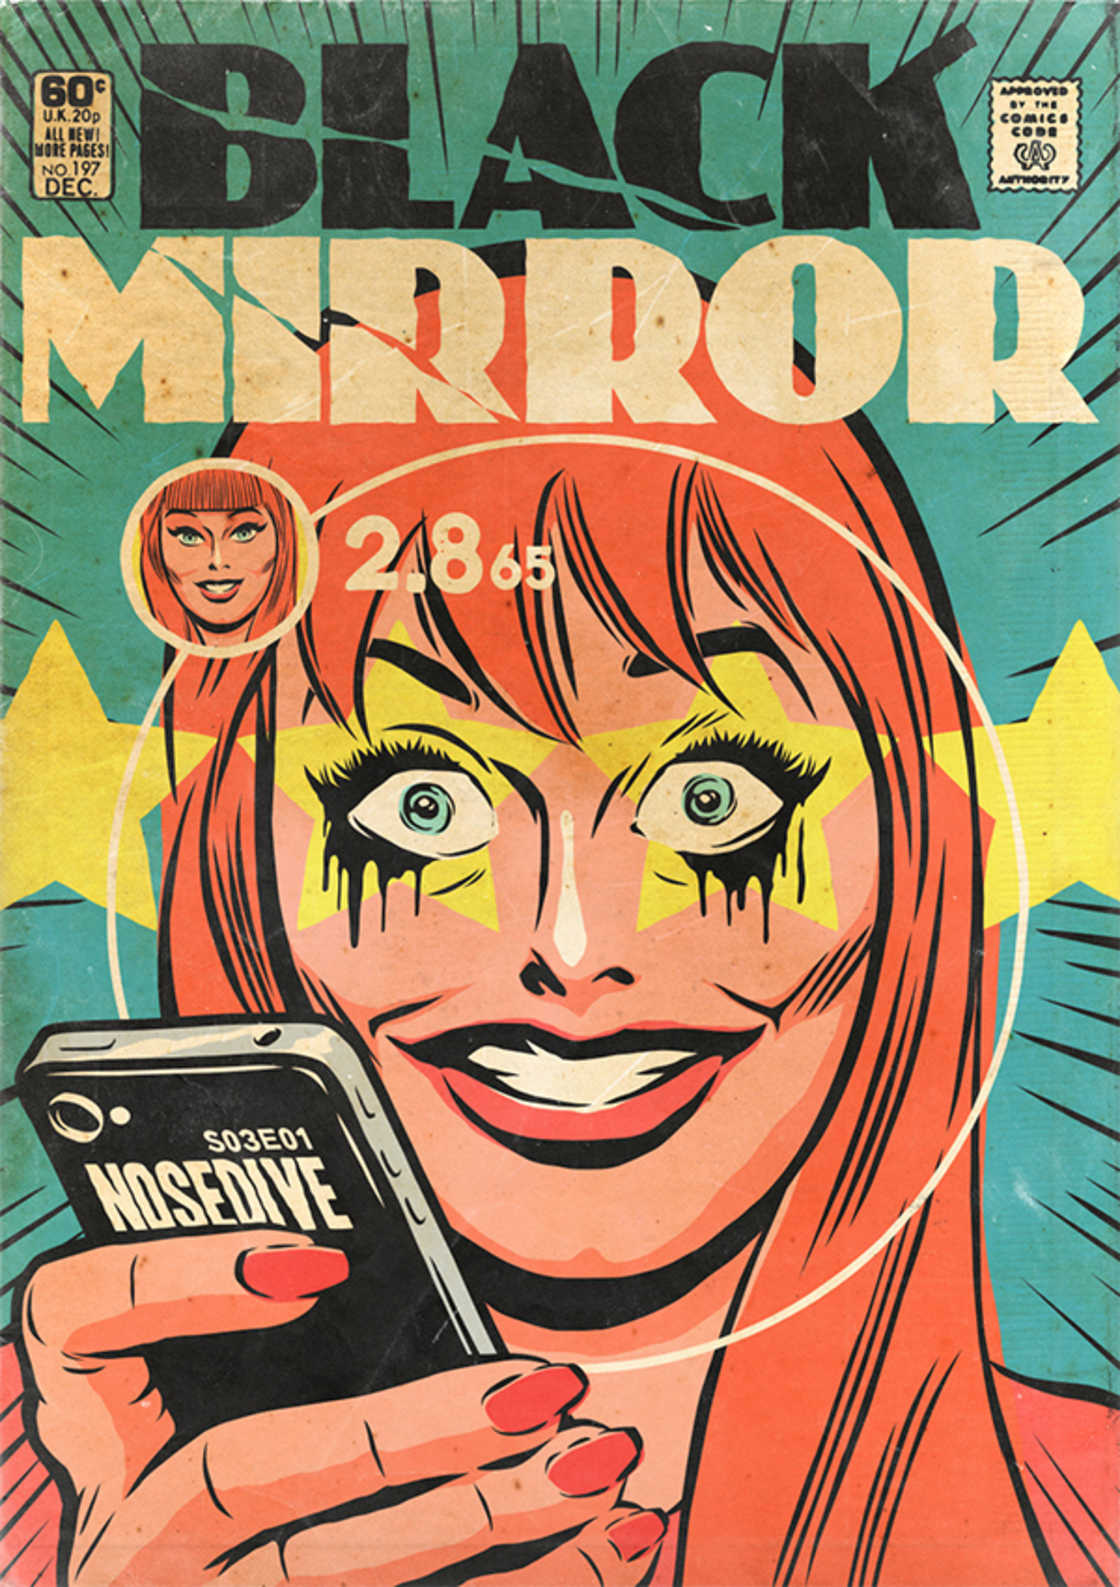 Black Mirror - Turning the episodes into vintage American comics